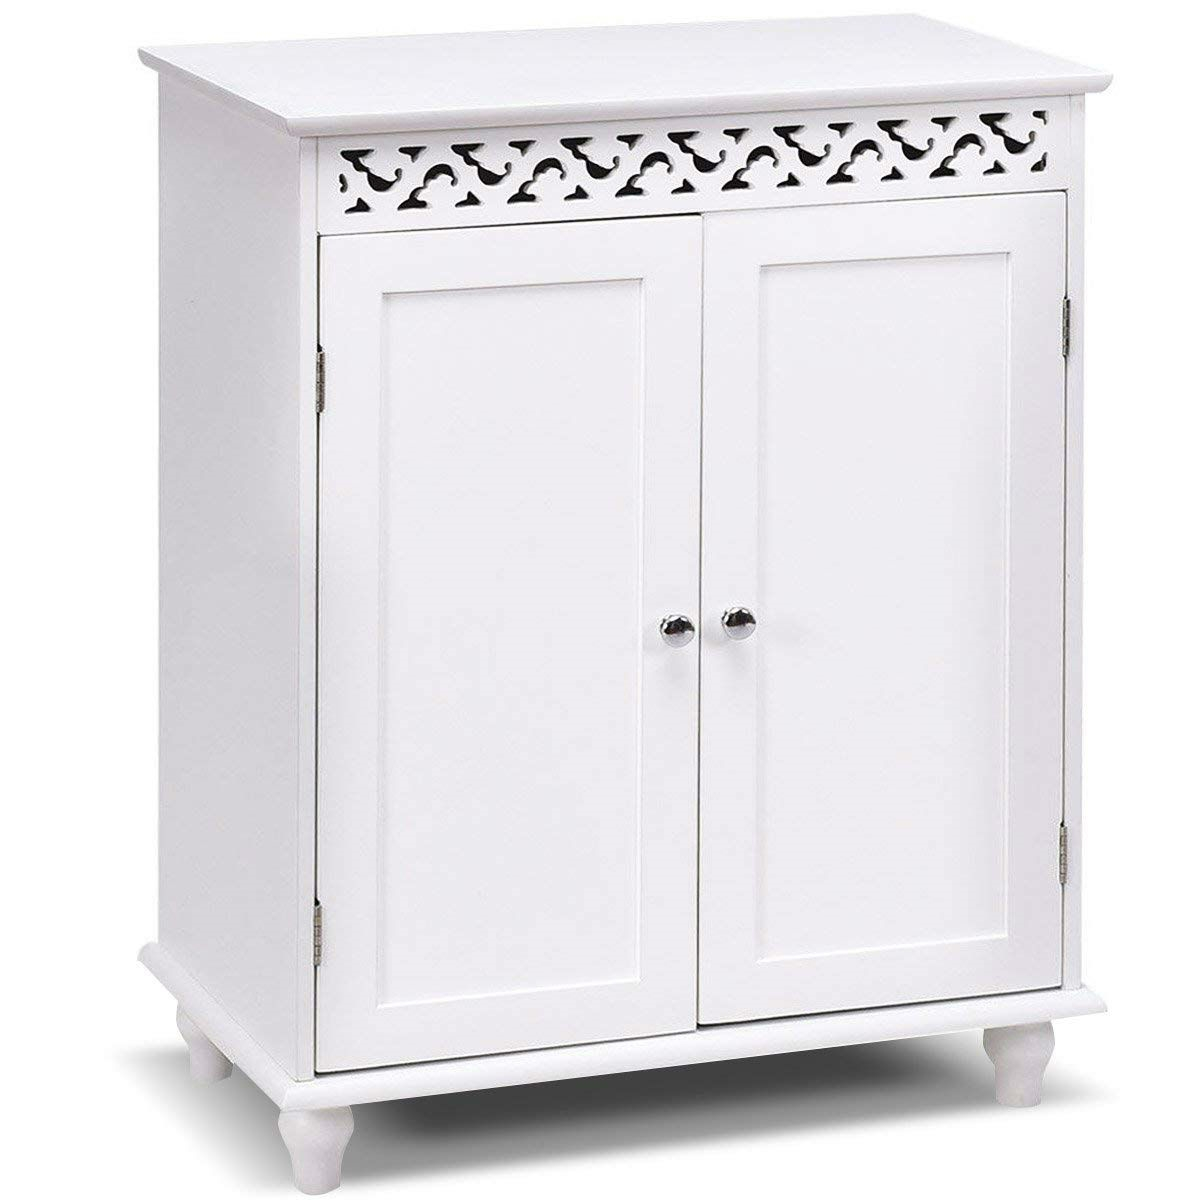 Amazing White Modern 2 Door Bathroom Storage Floor Cabinet Interior Design Ideas Clesiryabchikinfo